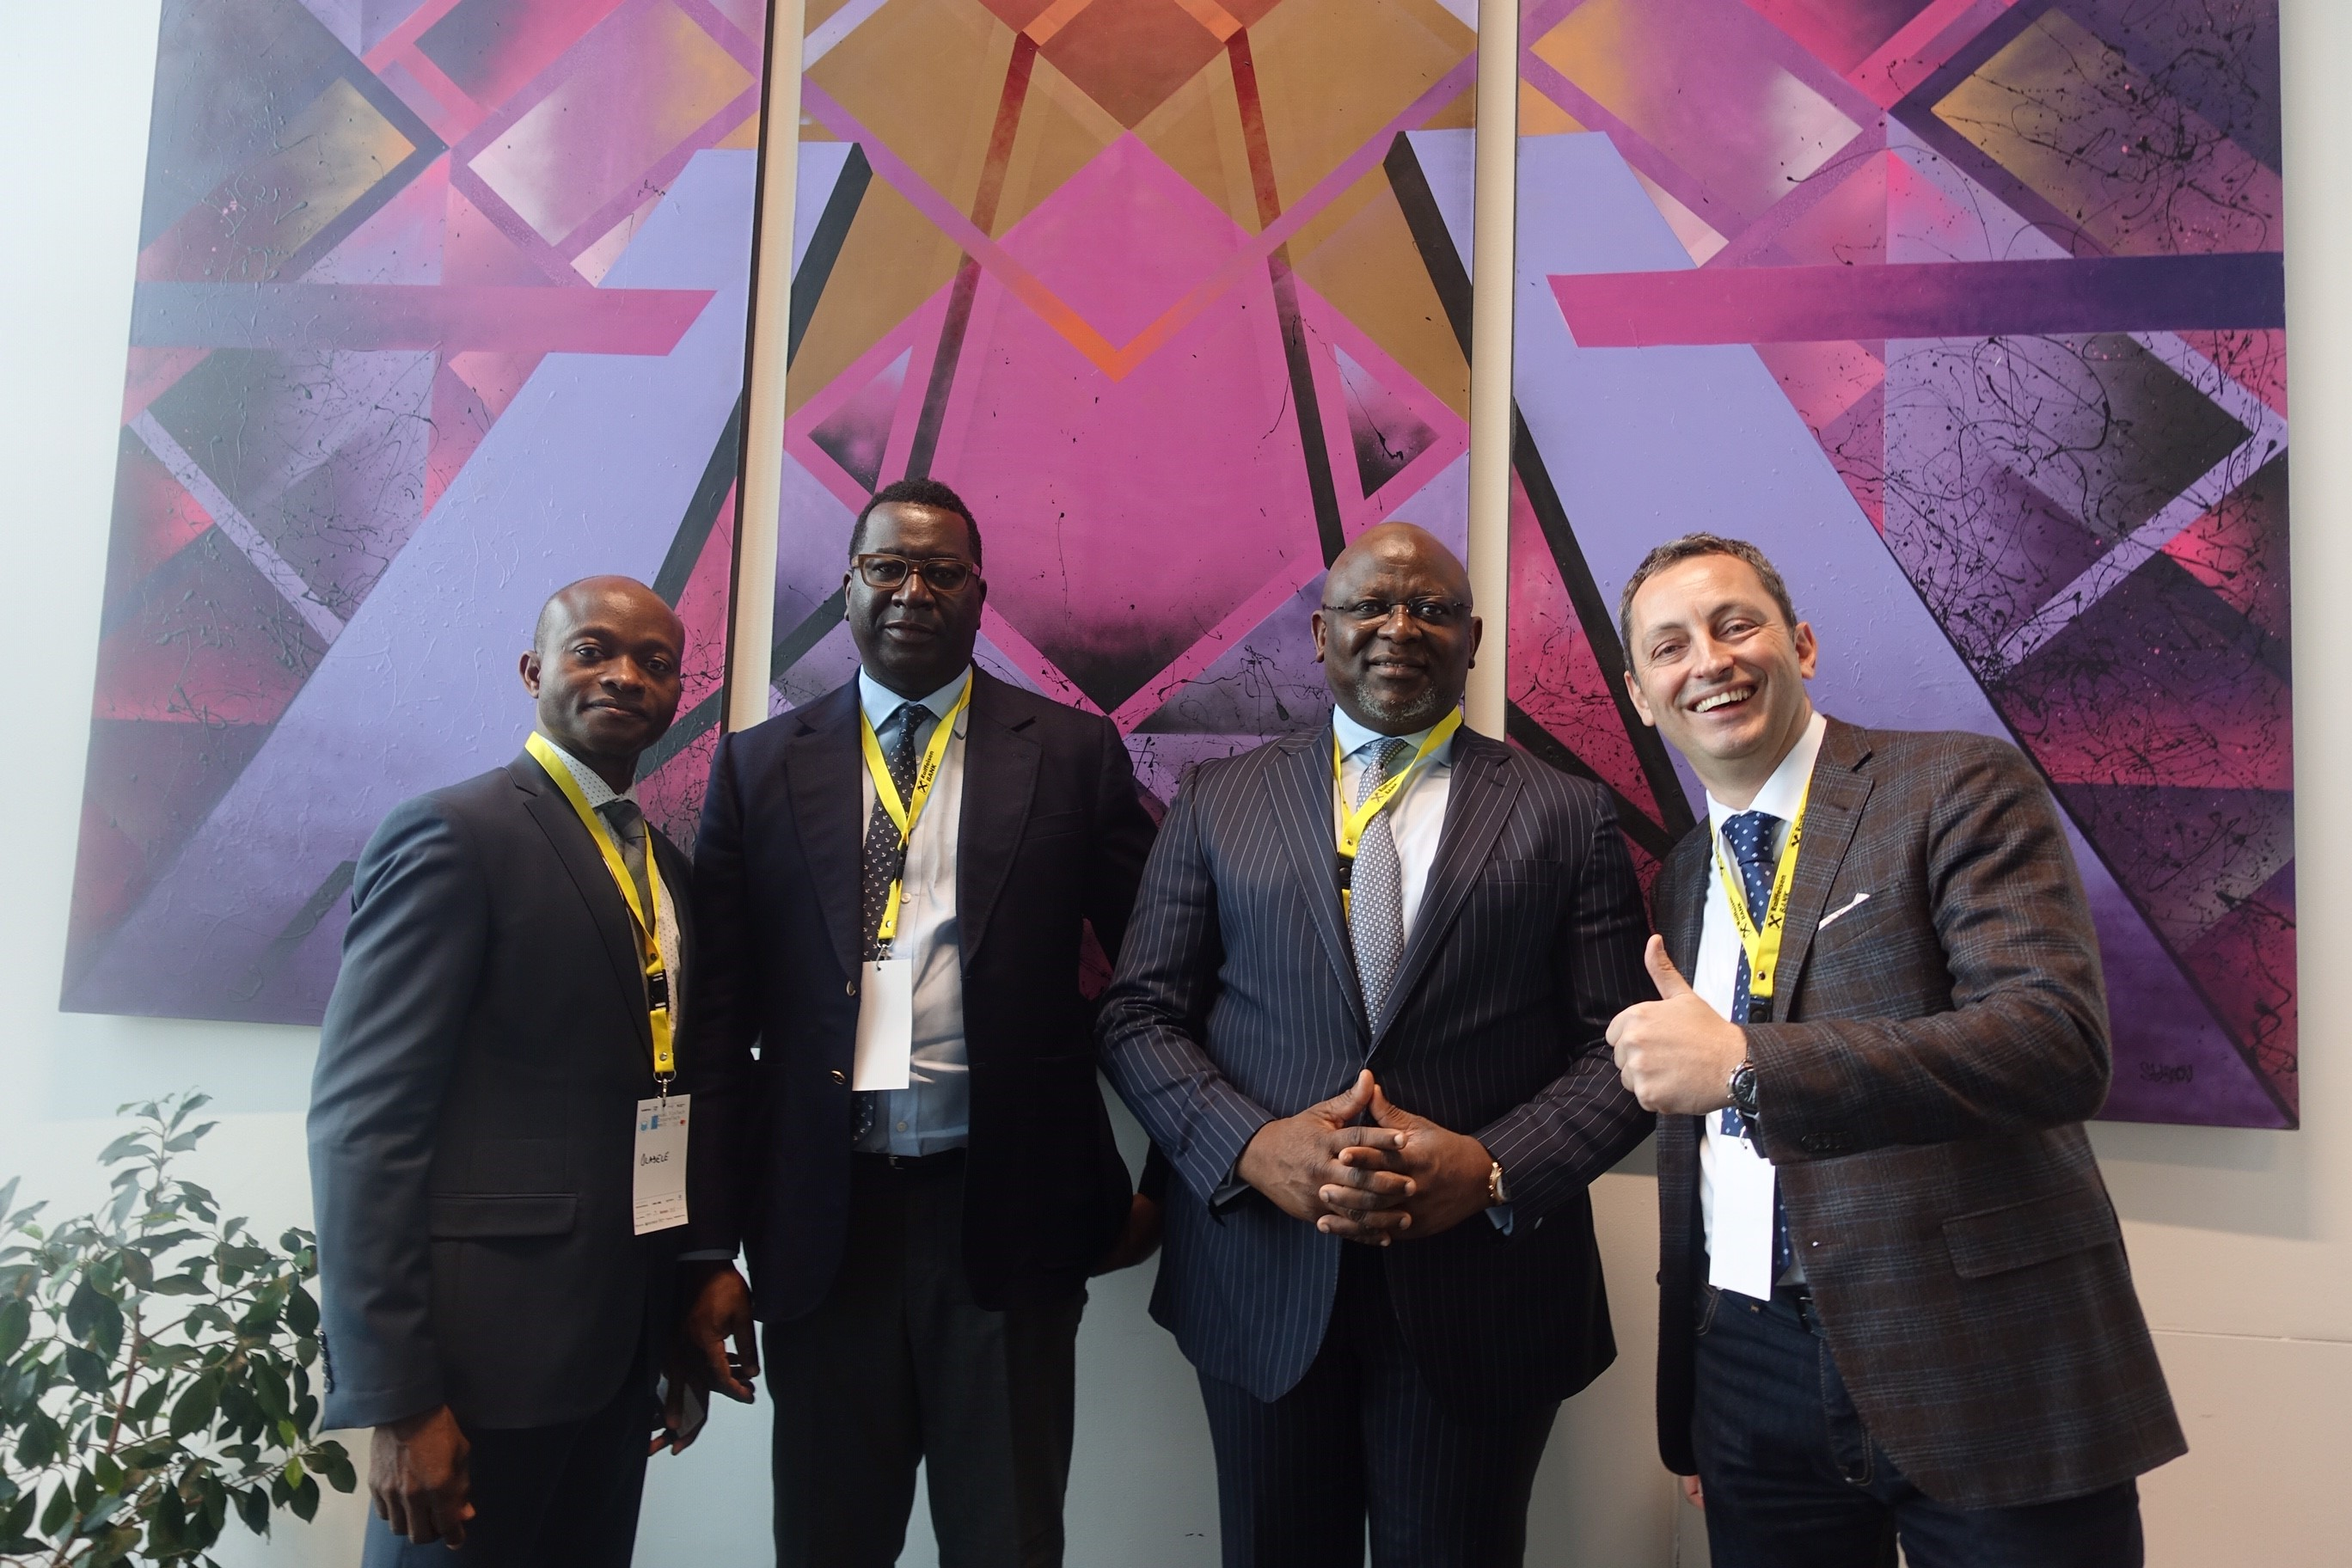 FirstBank CEO joins global leaders at Fintech and Insuretech Summit in Bulgaria